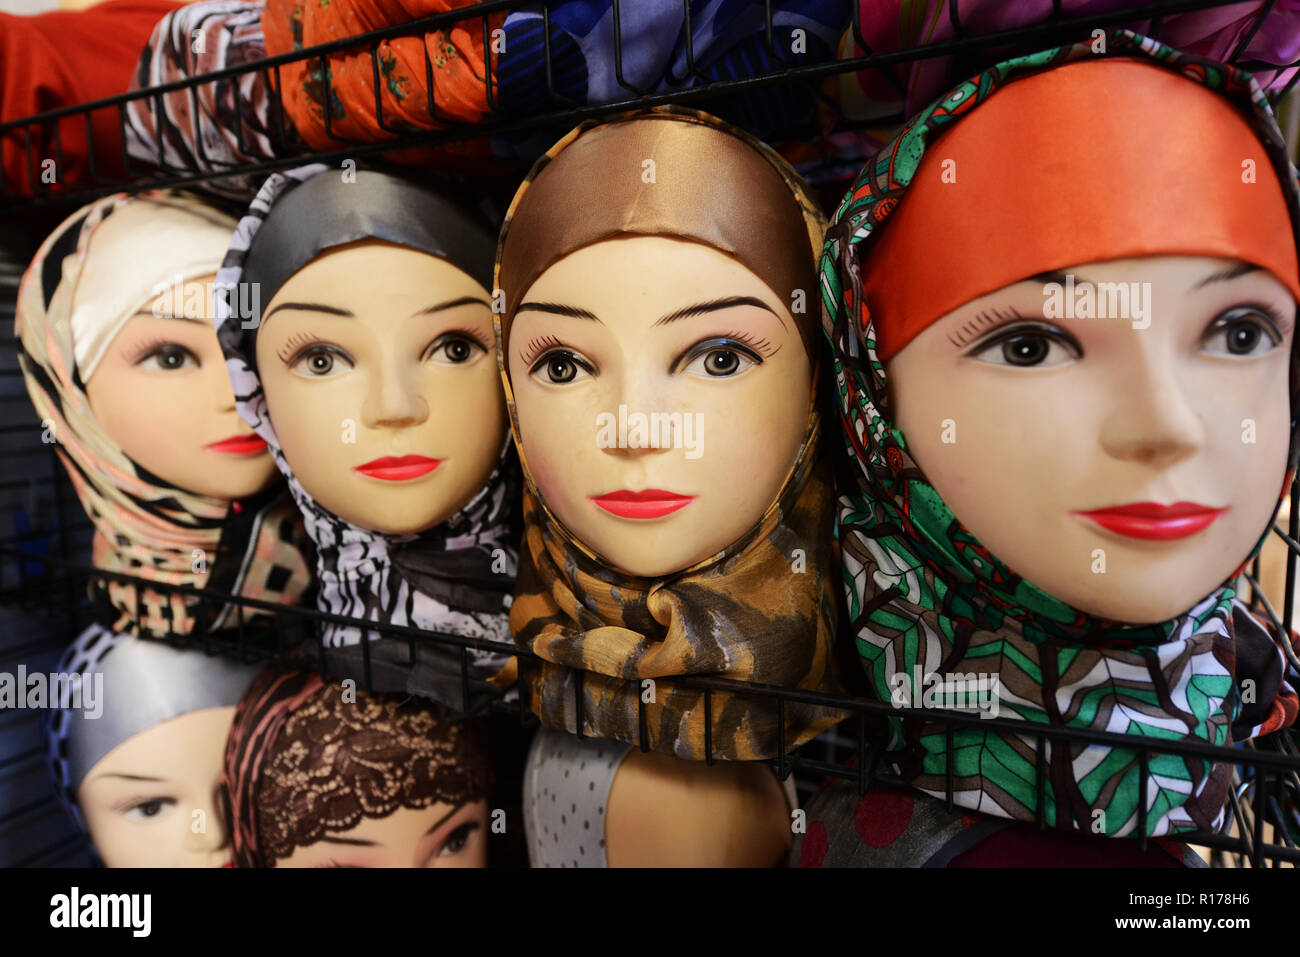 Manikins dressed with hijabs. - Stock Image